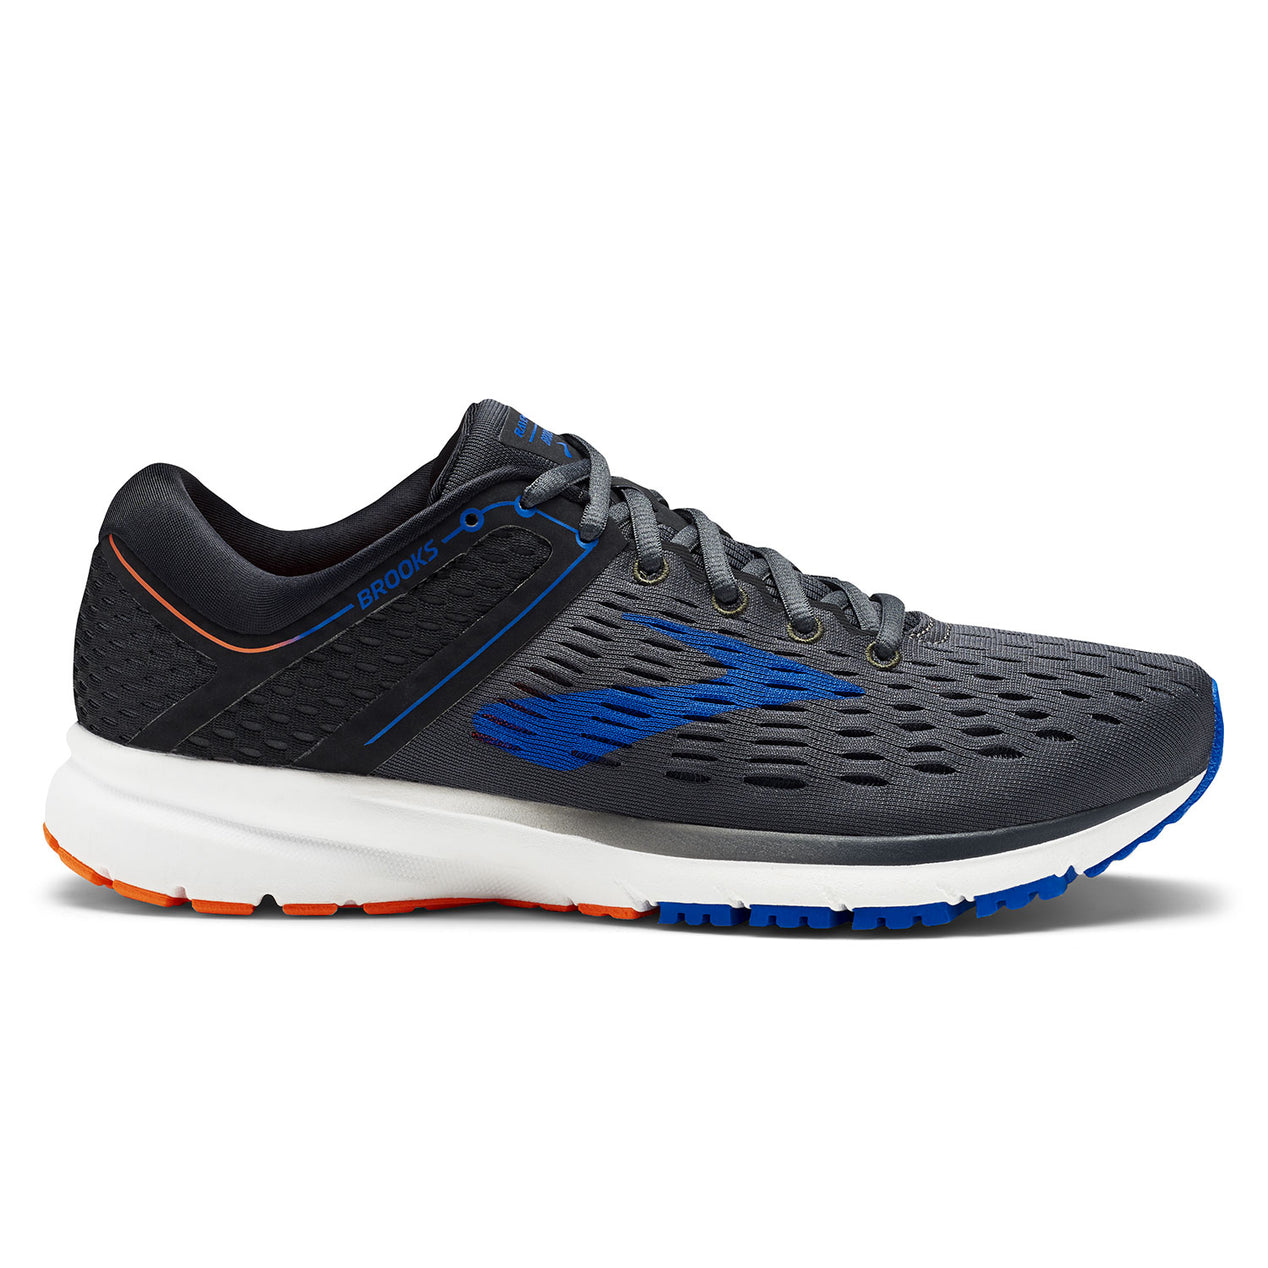 c09861fcbd910 Brooks Men s Ravenna 9 Running Shoes